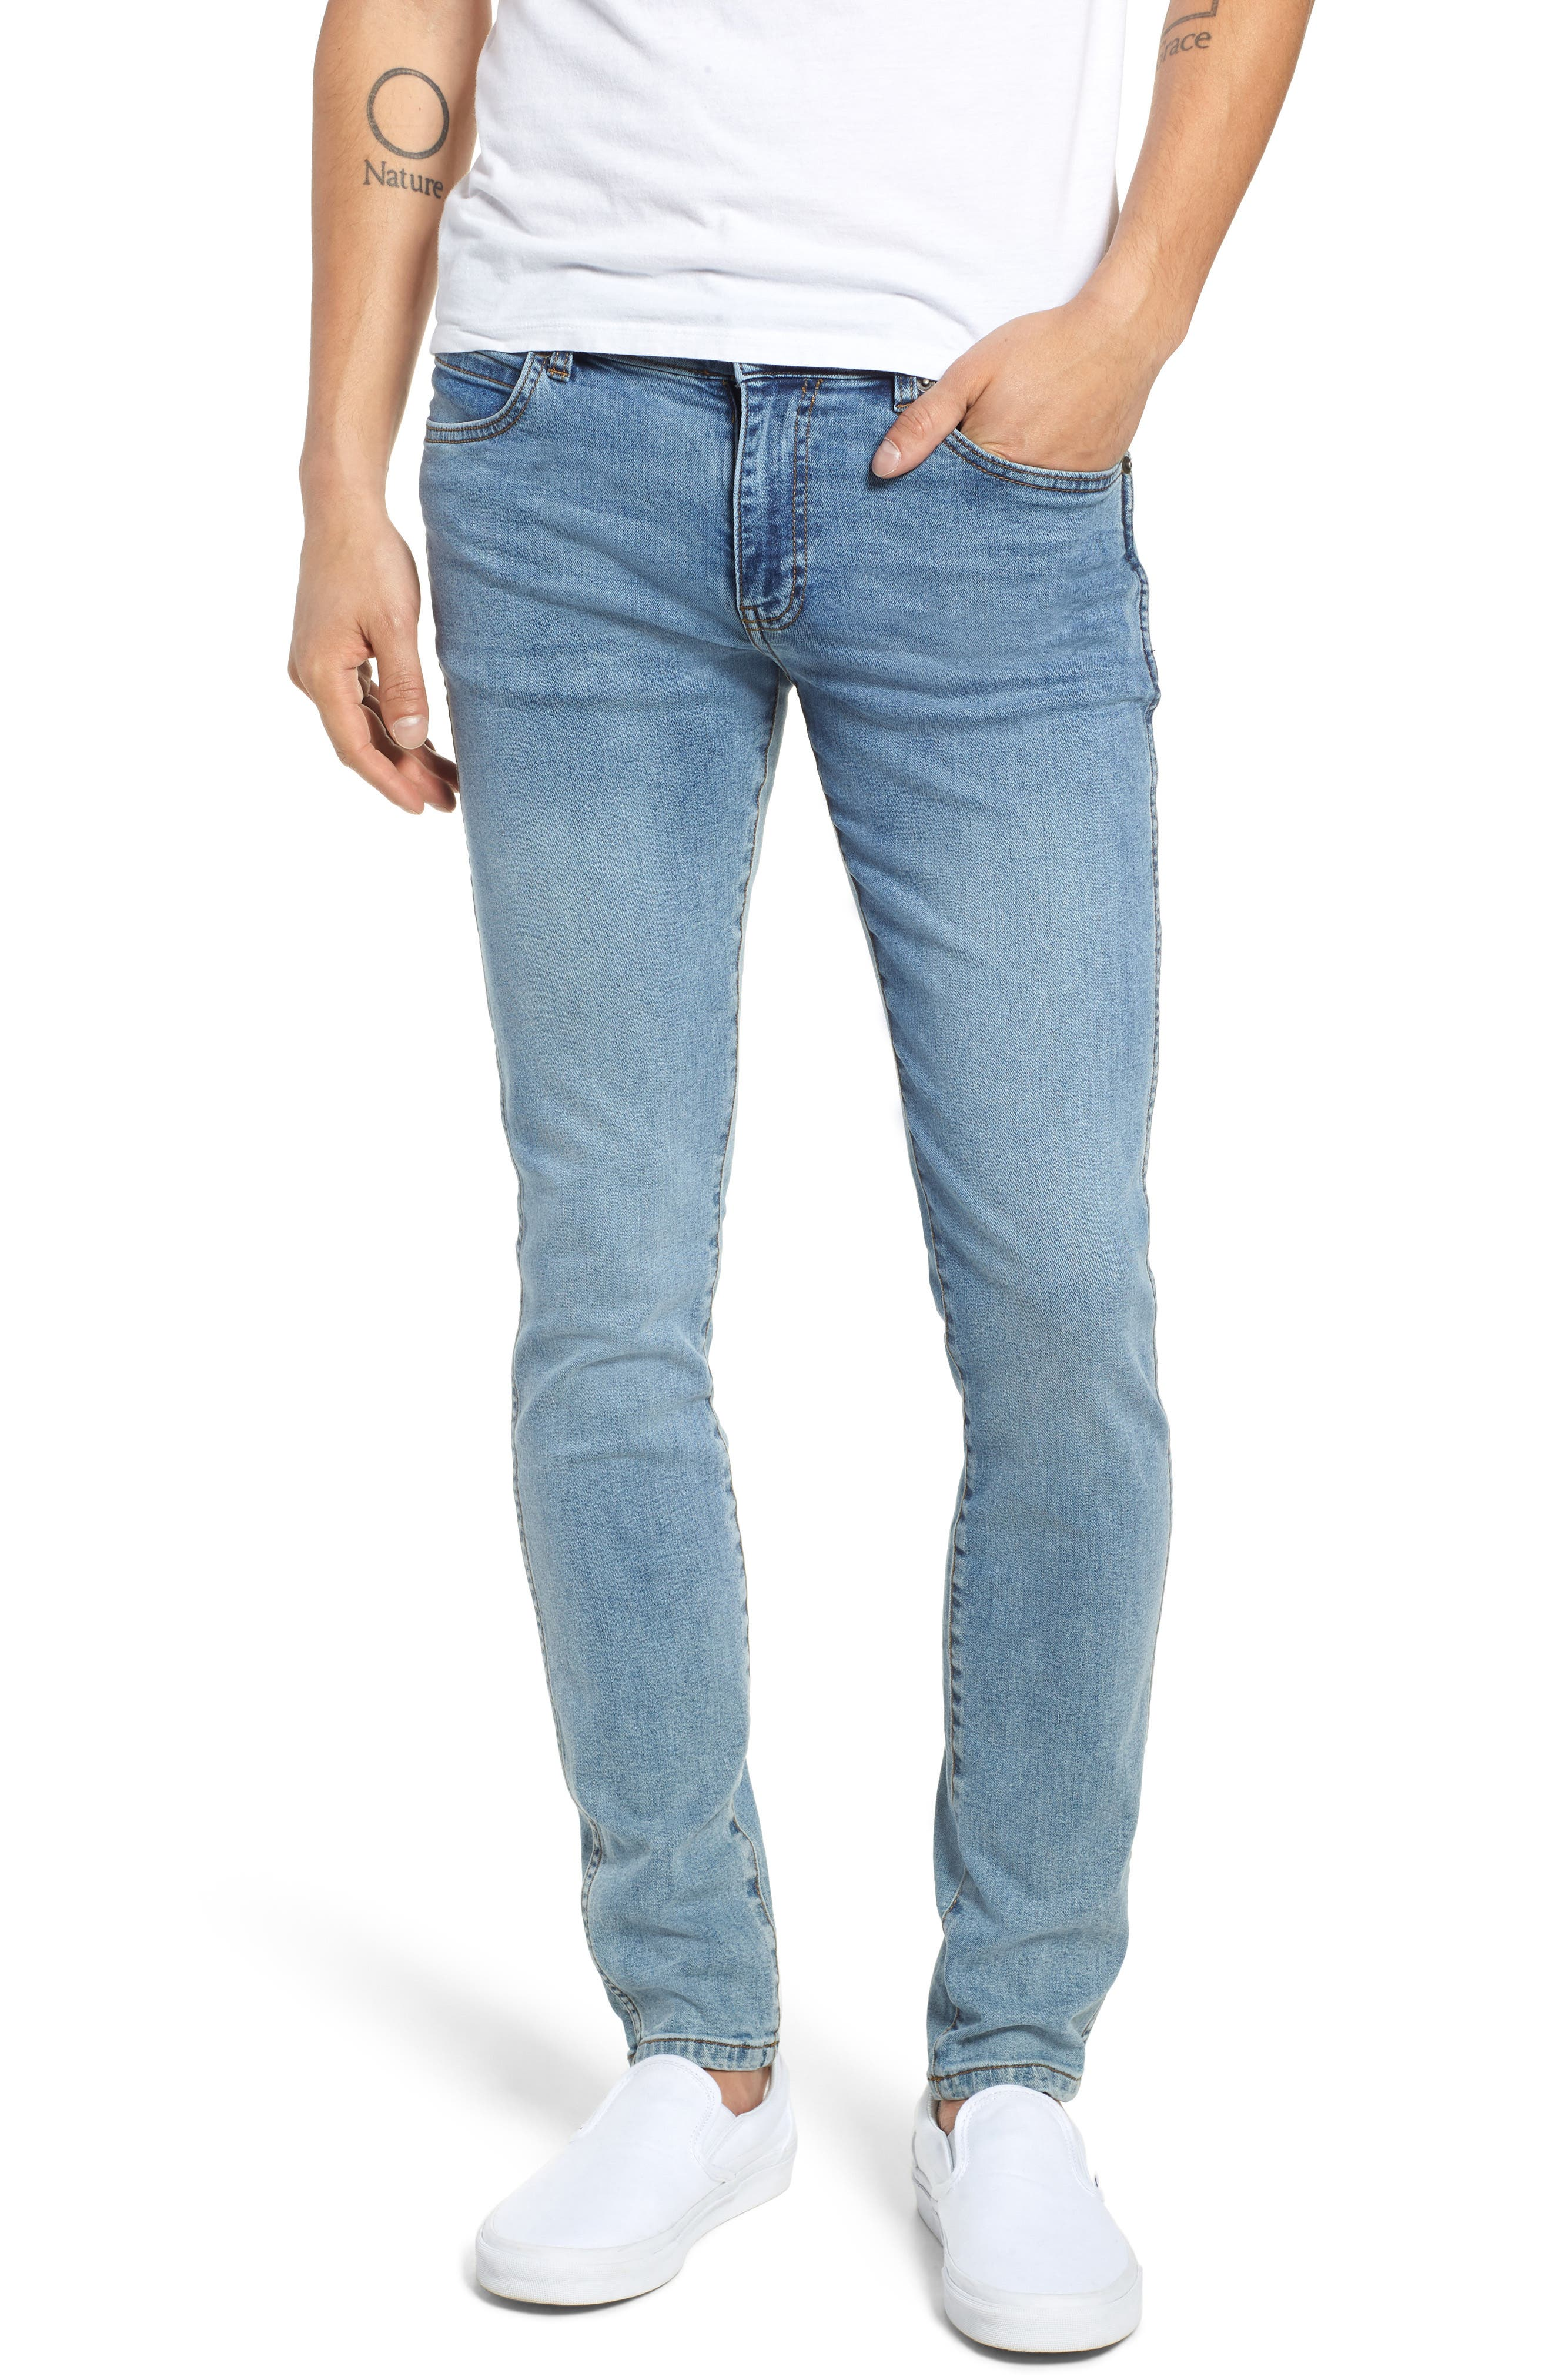 Snap Skinny Fit Jeans,                             Main thumbnail 1, color,                             Yonder Blue Wash